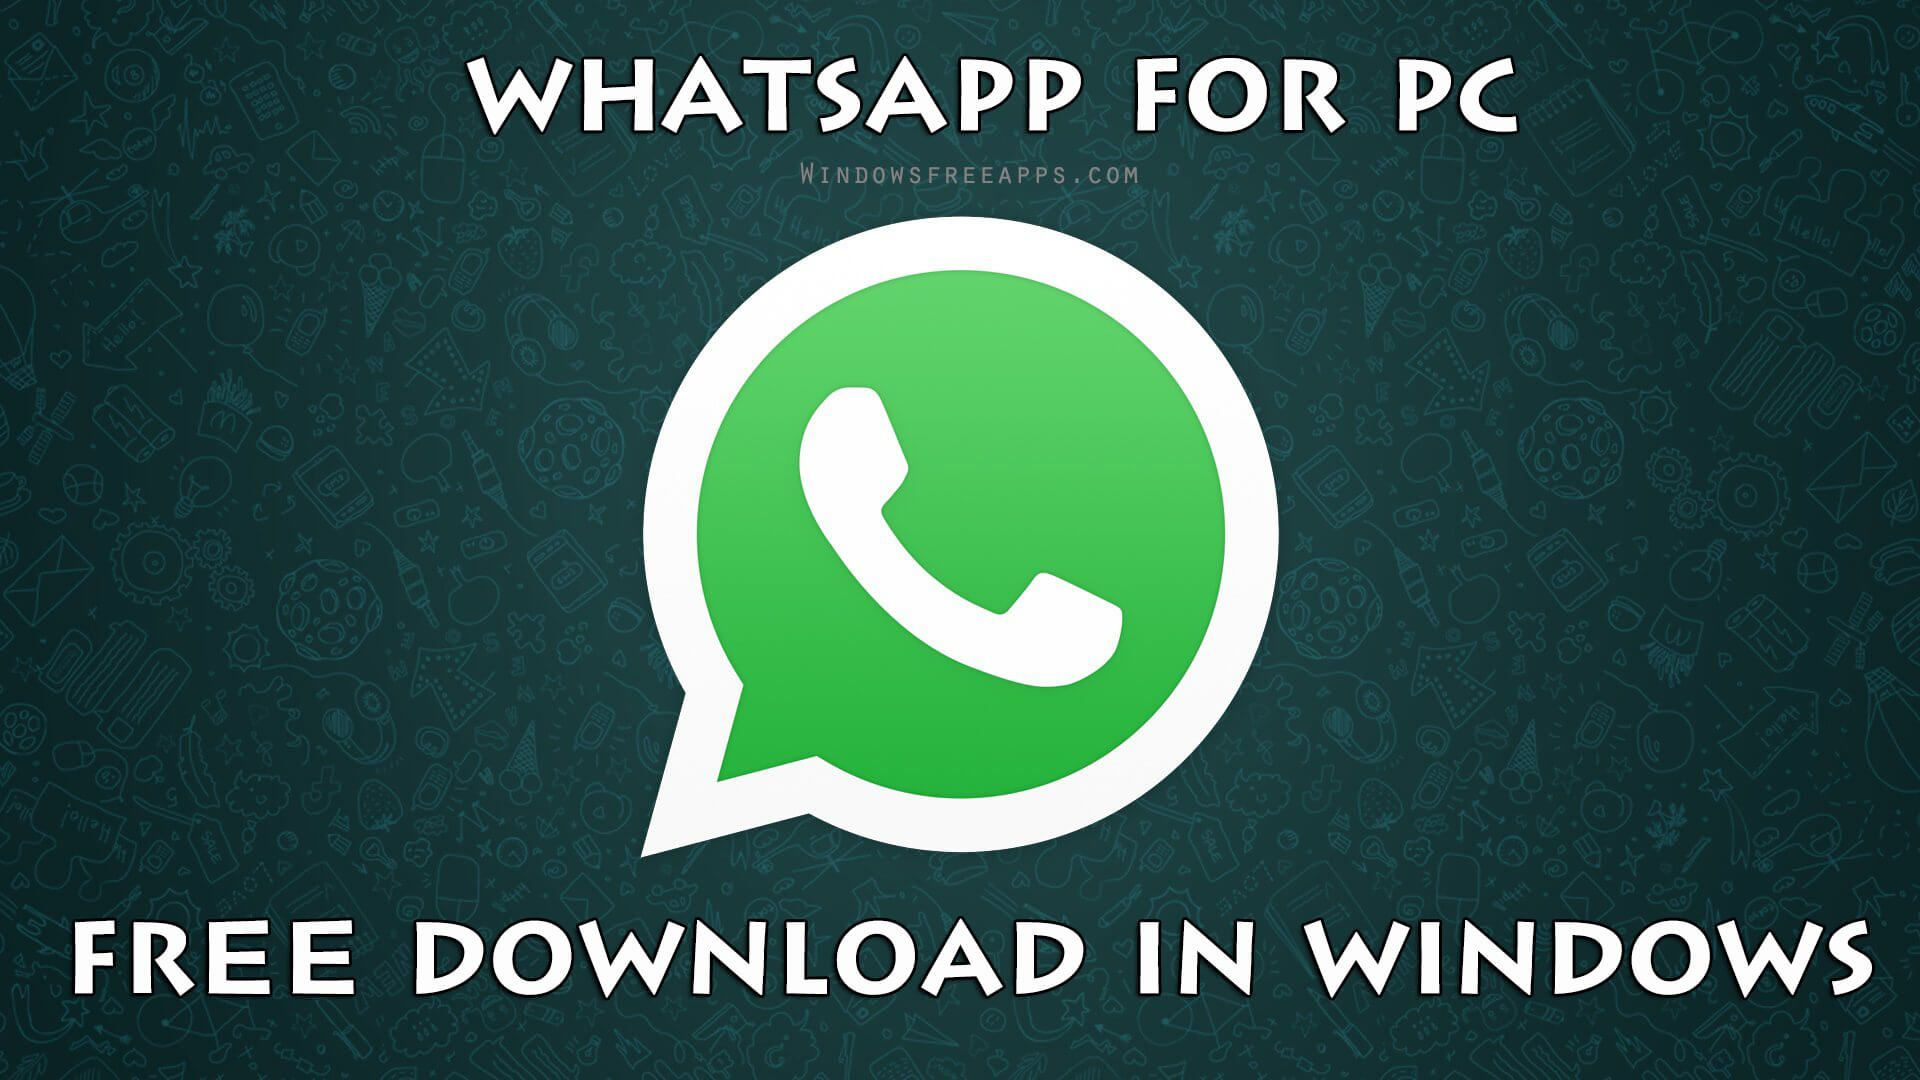 We will guide you how to get WhatsApp download free for